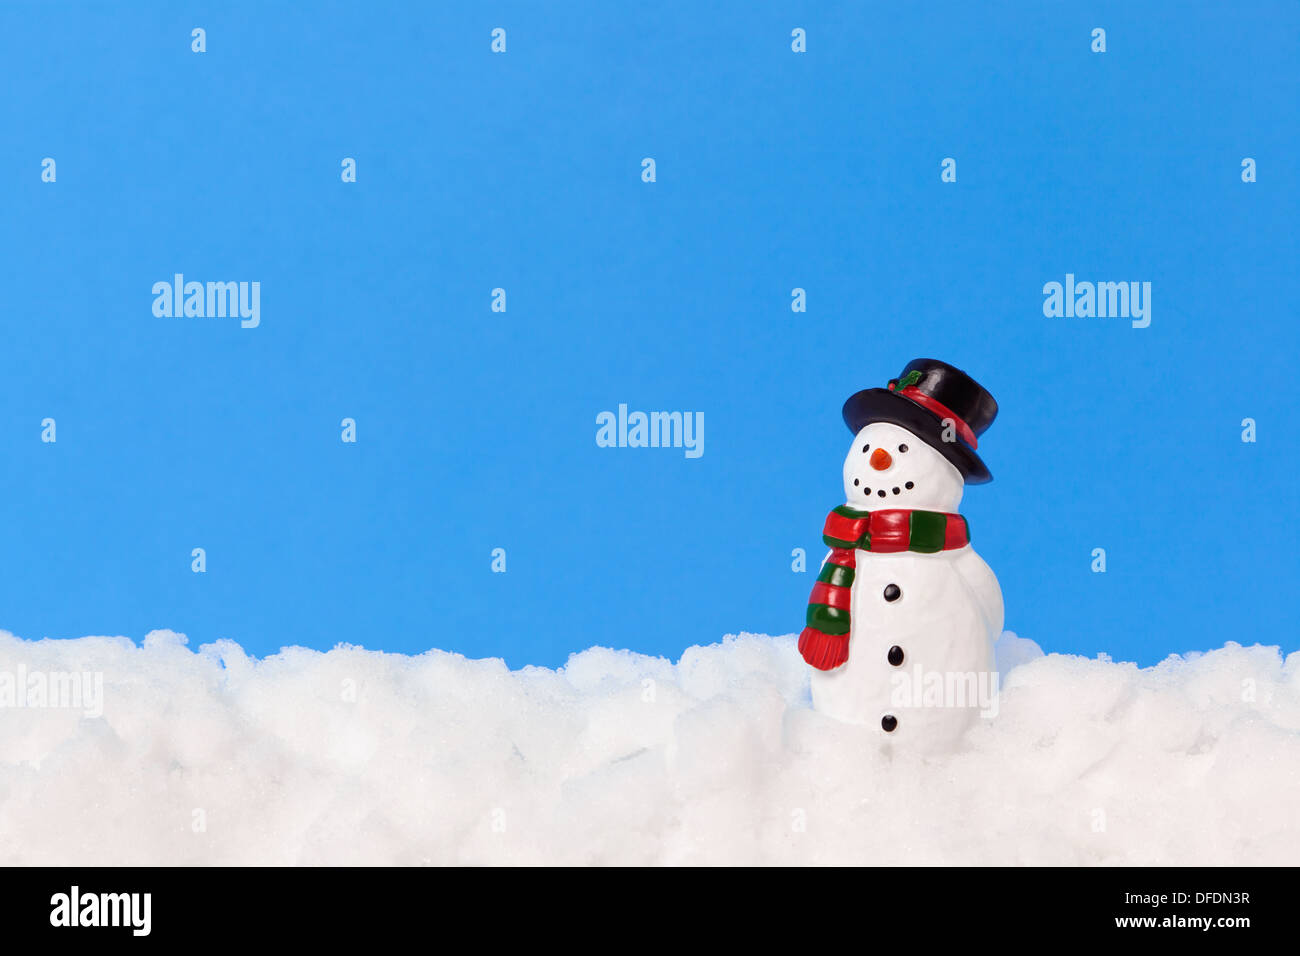 A model snowman on real snow against a plain blue background, add your own text. - Stock Image